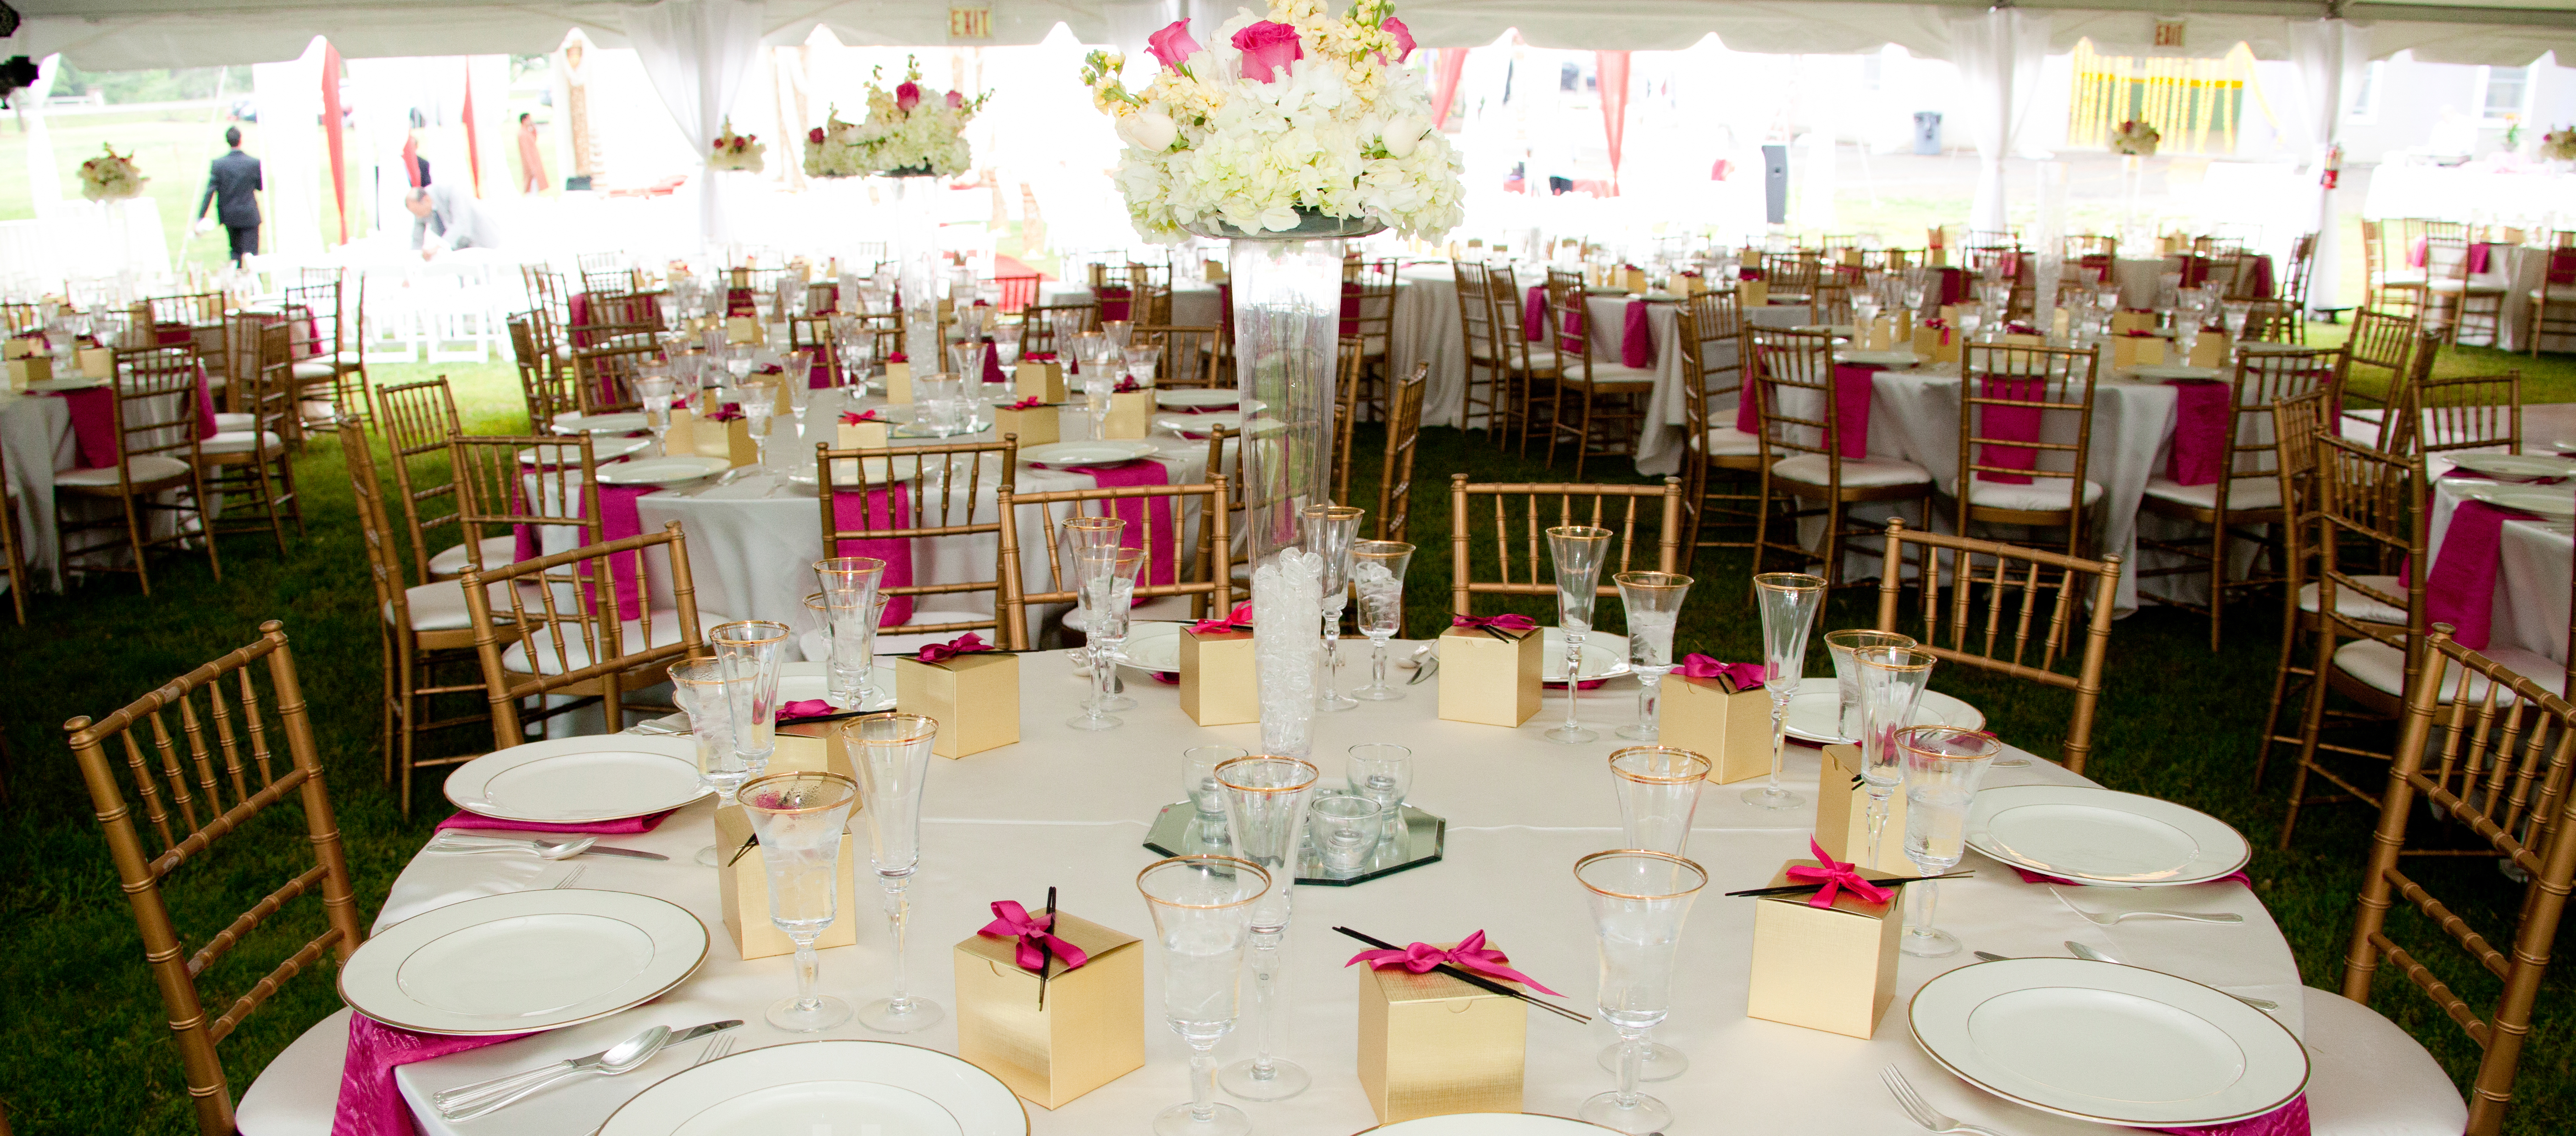 Outdoor reception with tables under white tents, gold chiavari chairs, white linens, and table decor